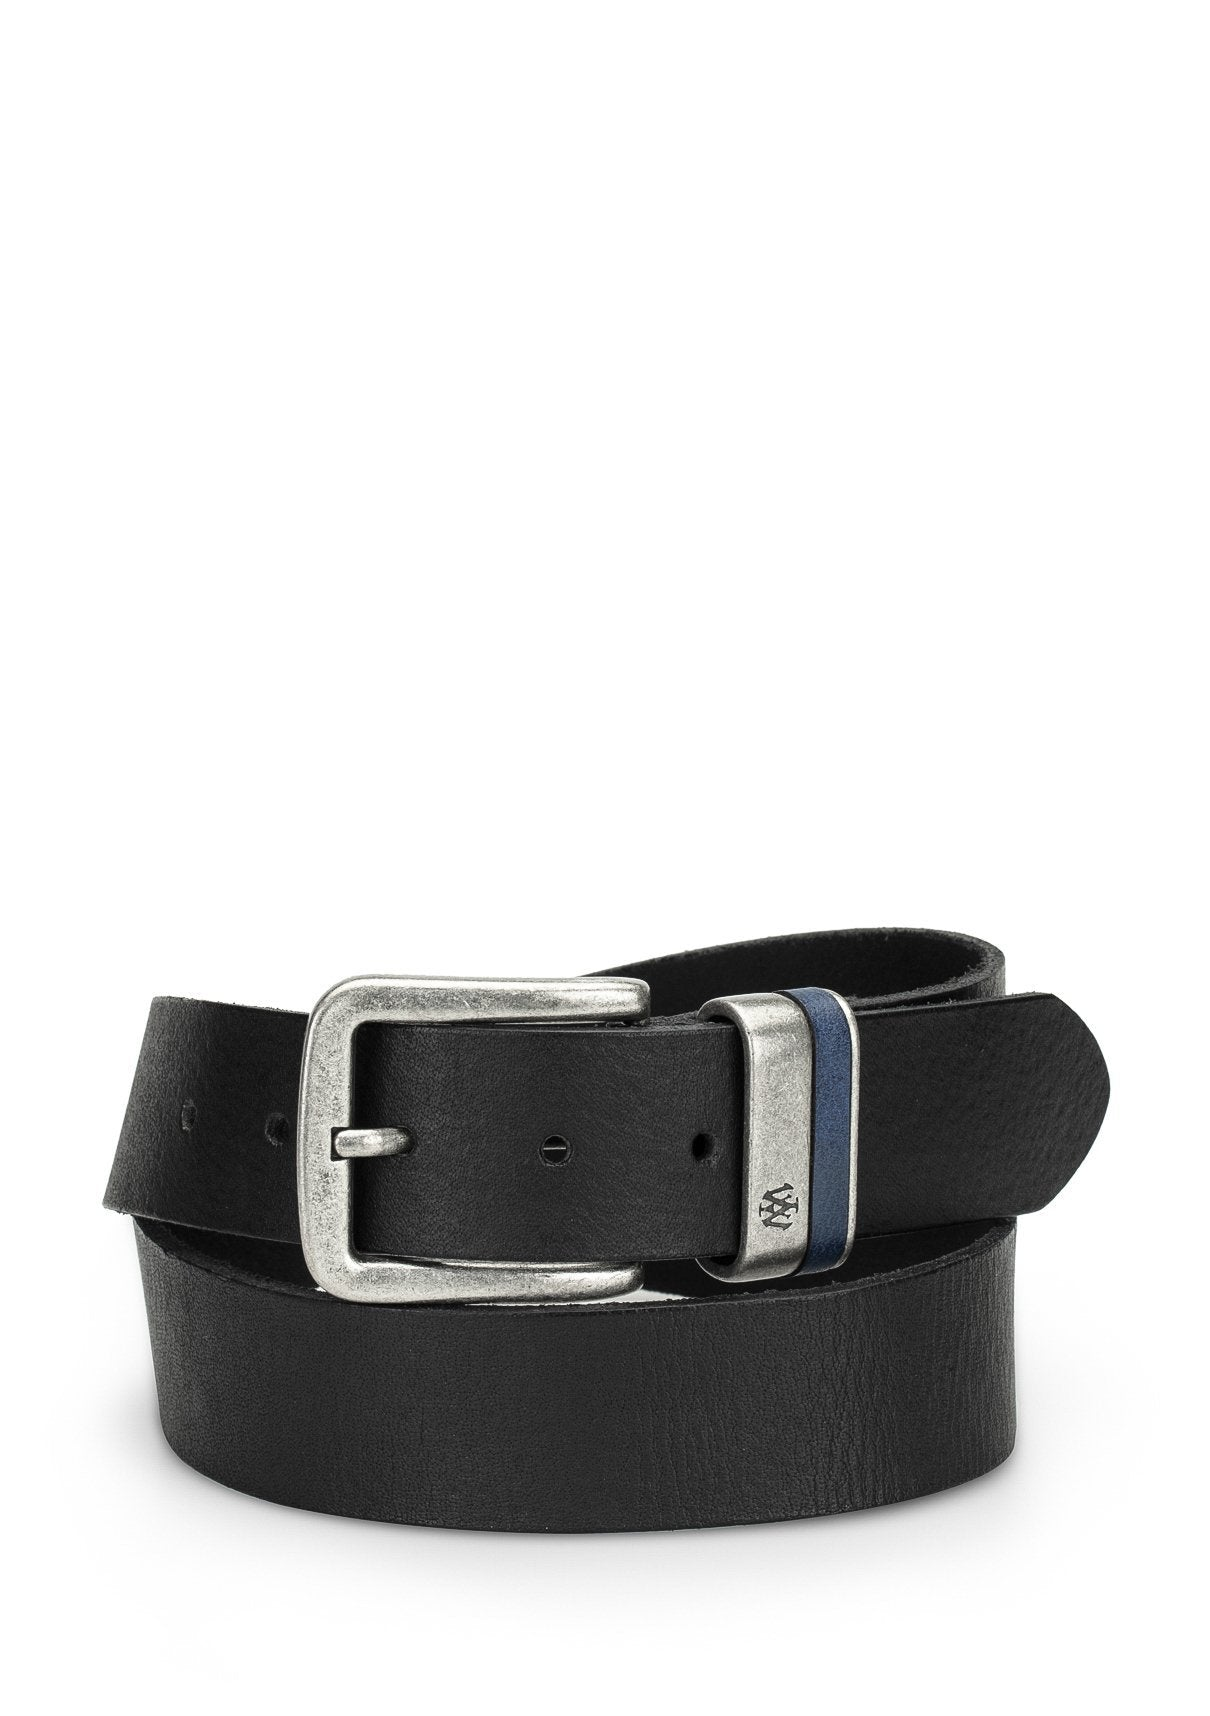 Black Leather Belt with Silver Buckle Image 1